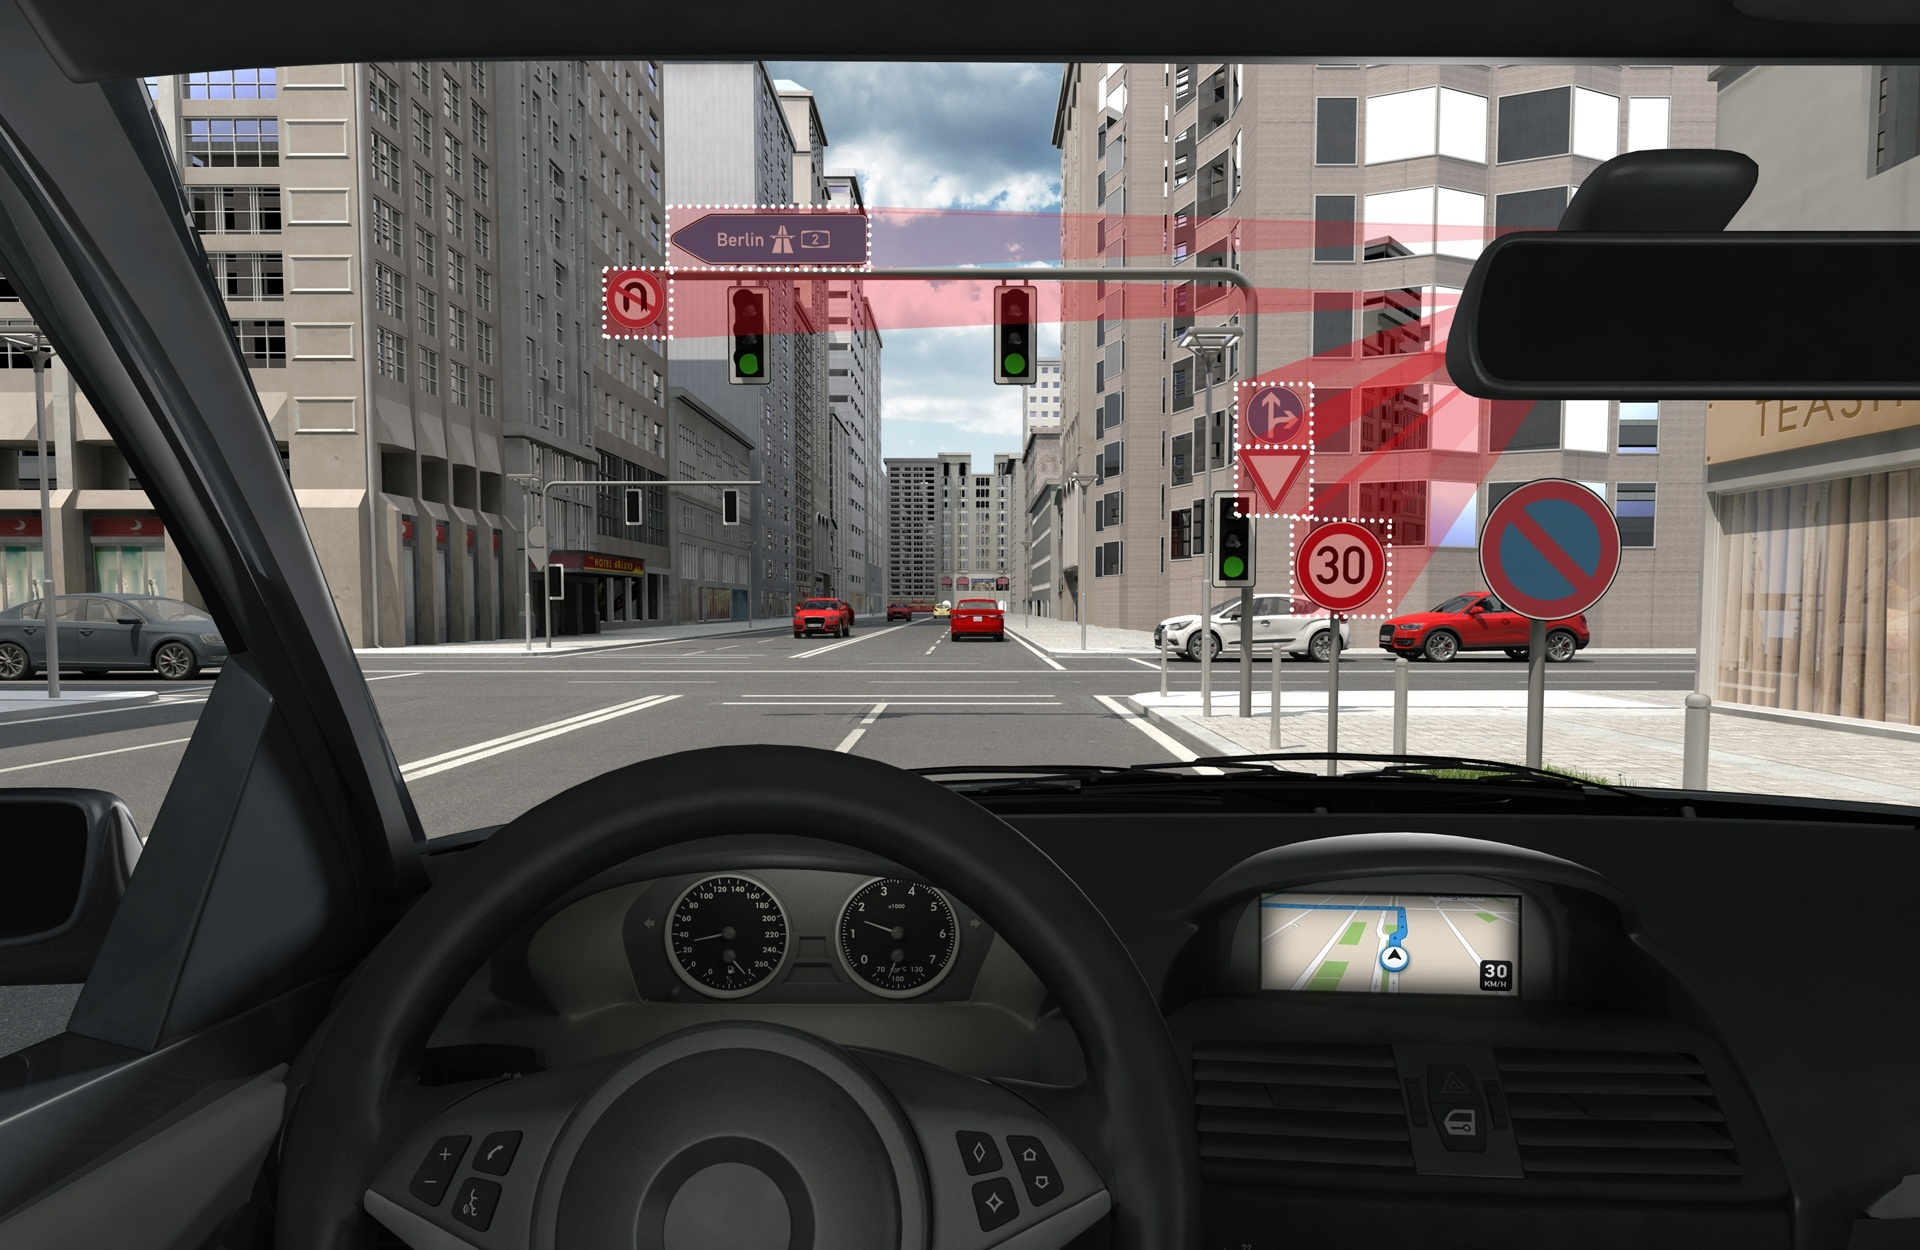 Camera-based traffic sign recognition in traffic.